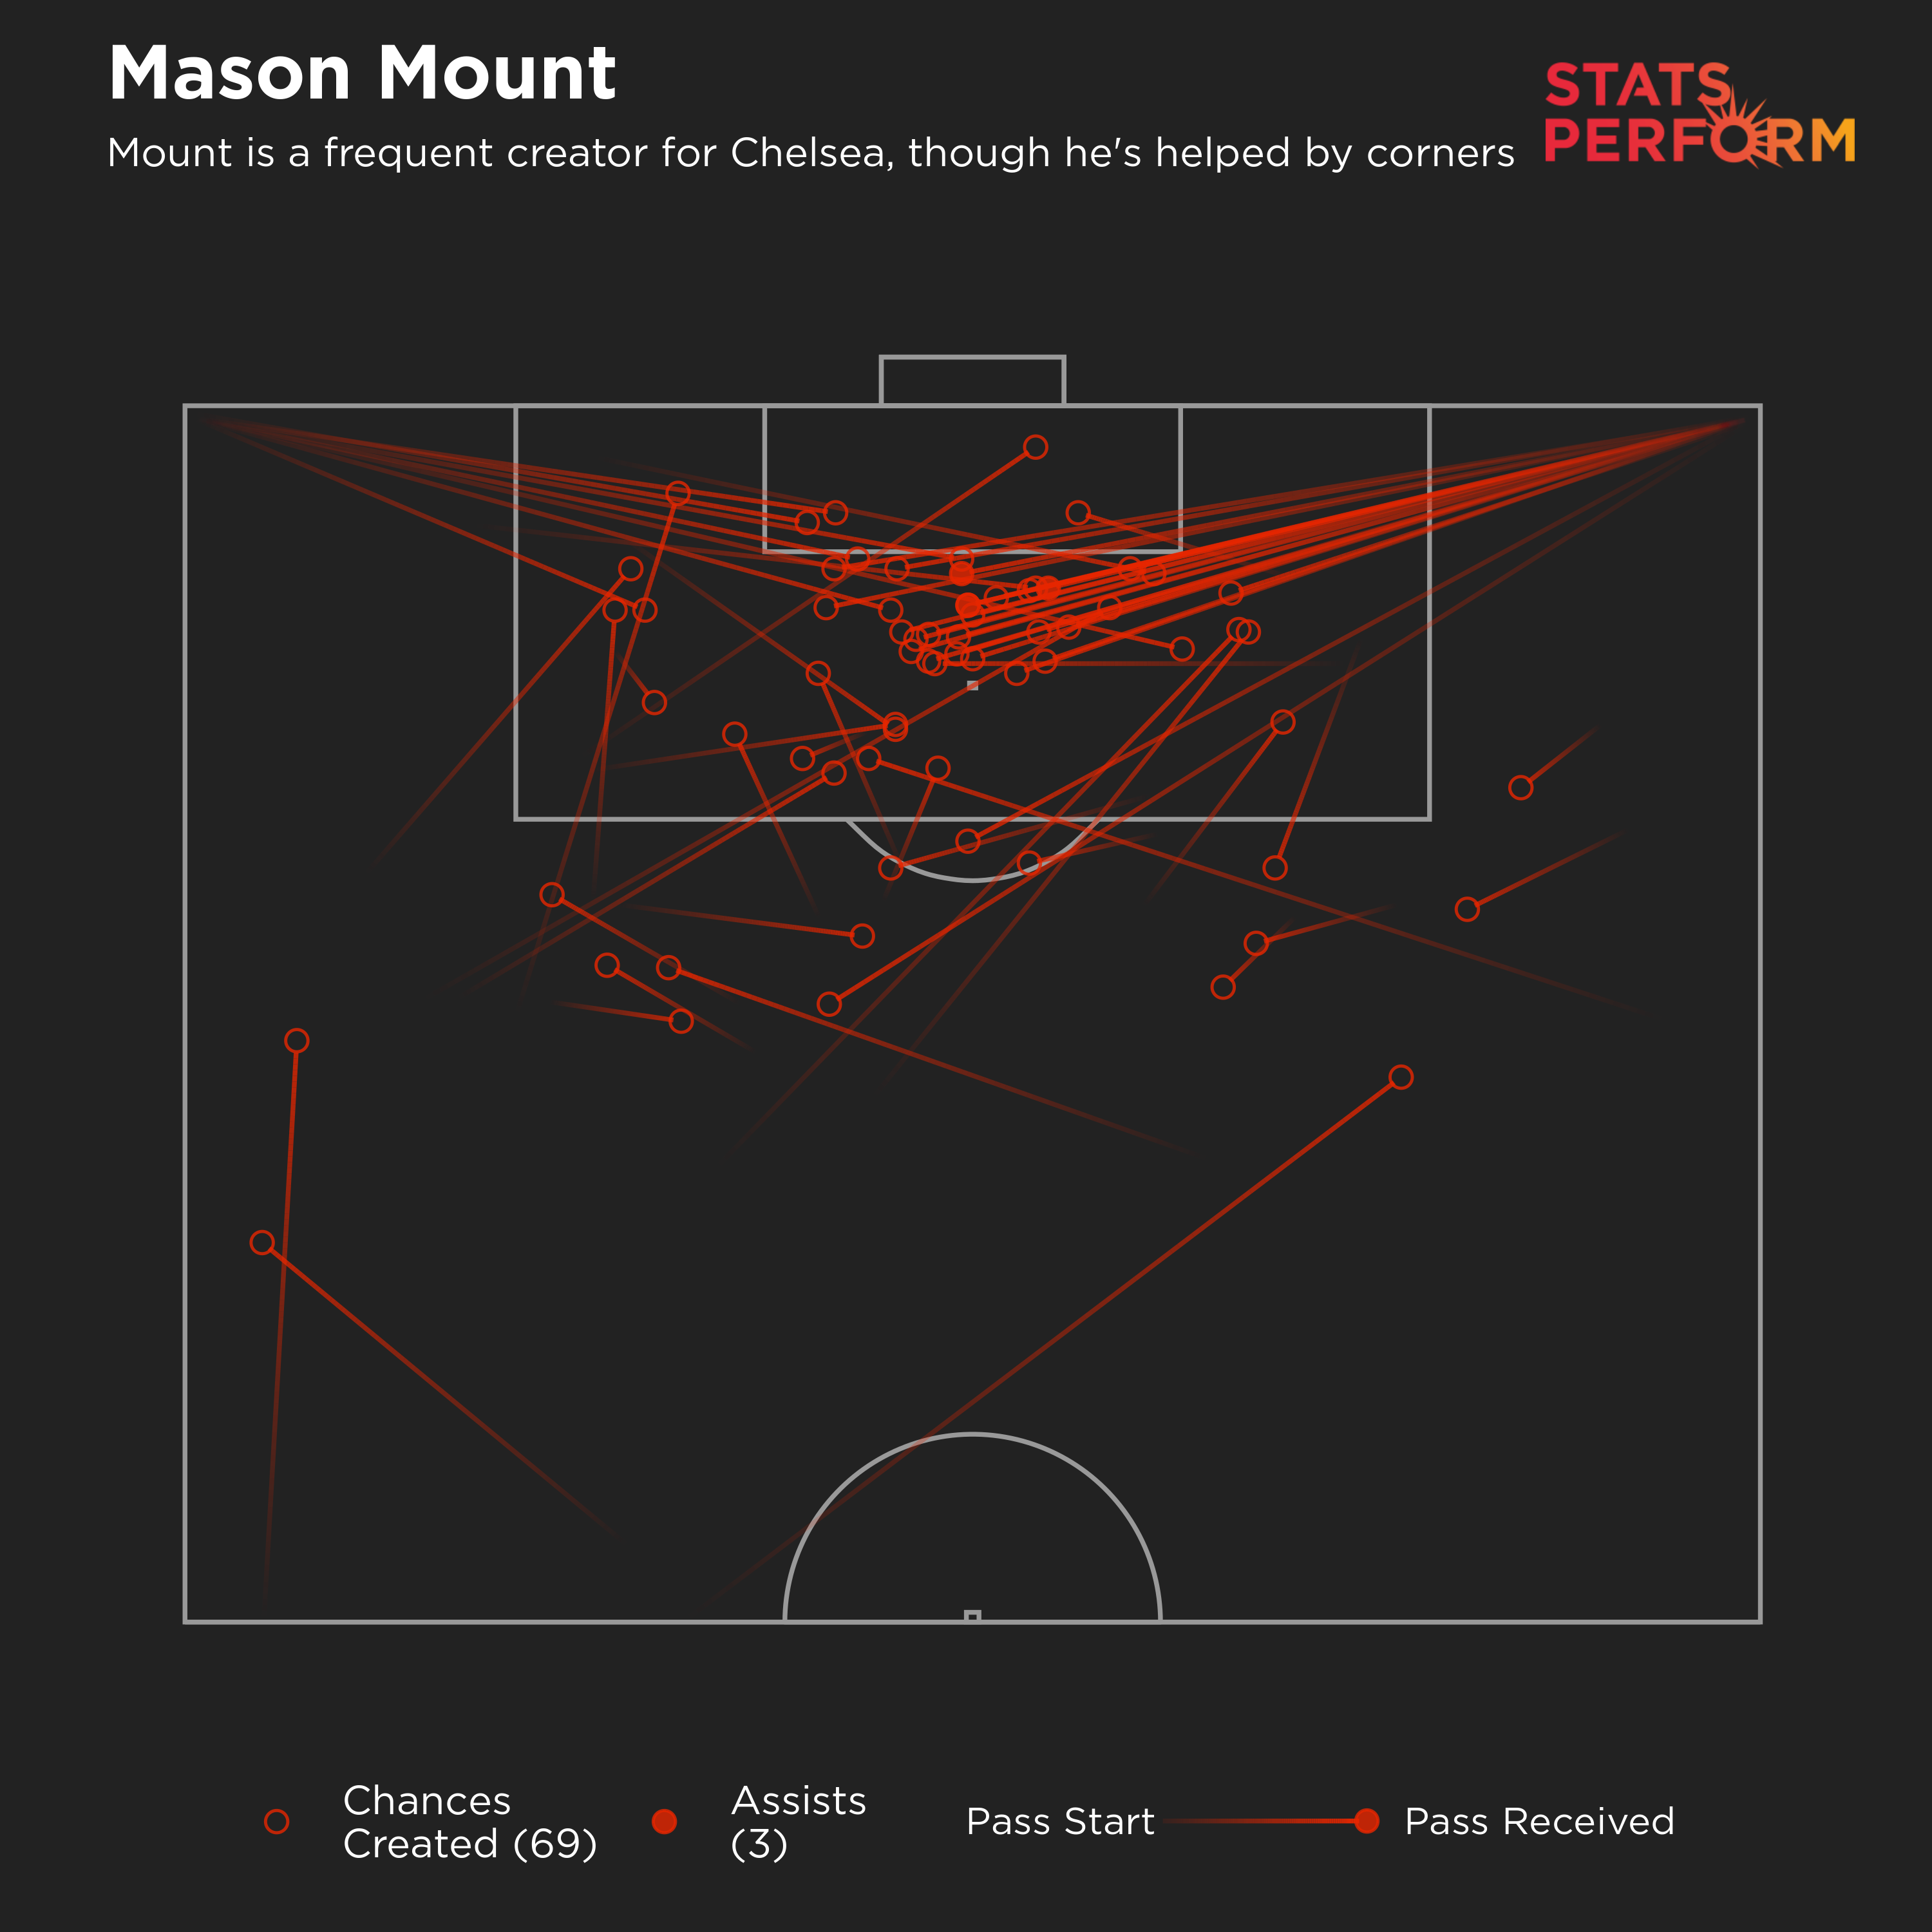 Mason Mount is a chief creator for Chelsea, though he's helped by corners